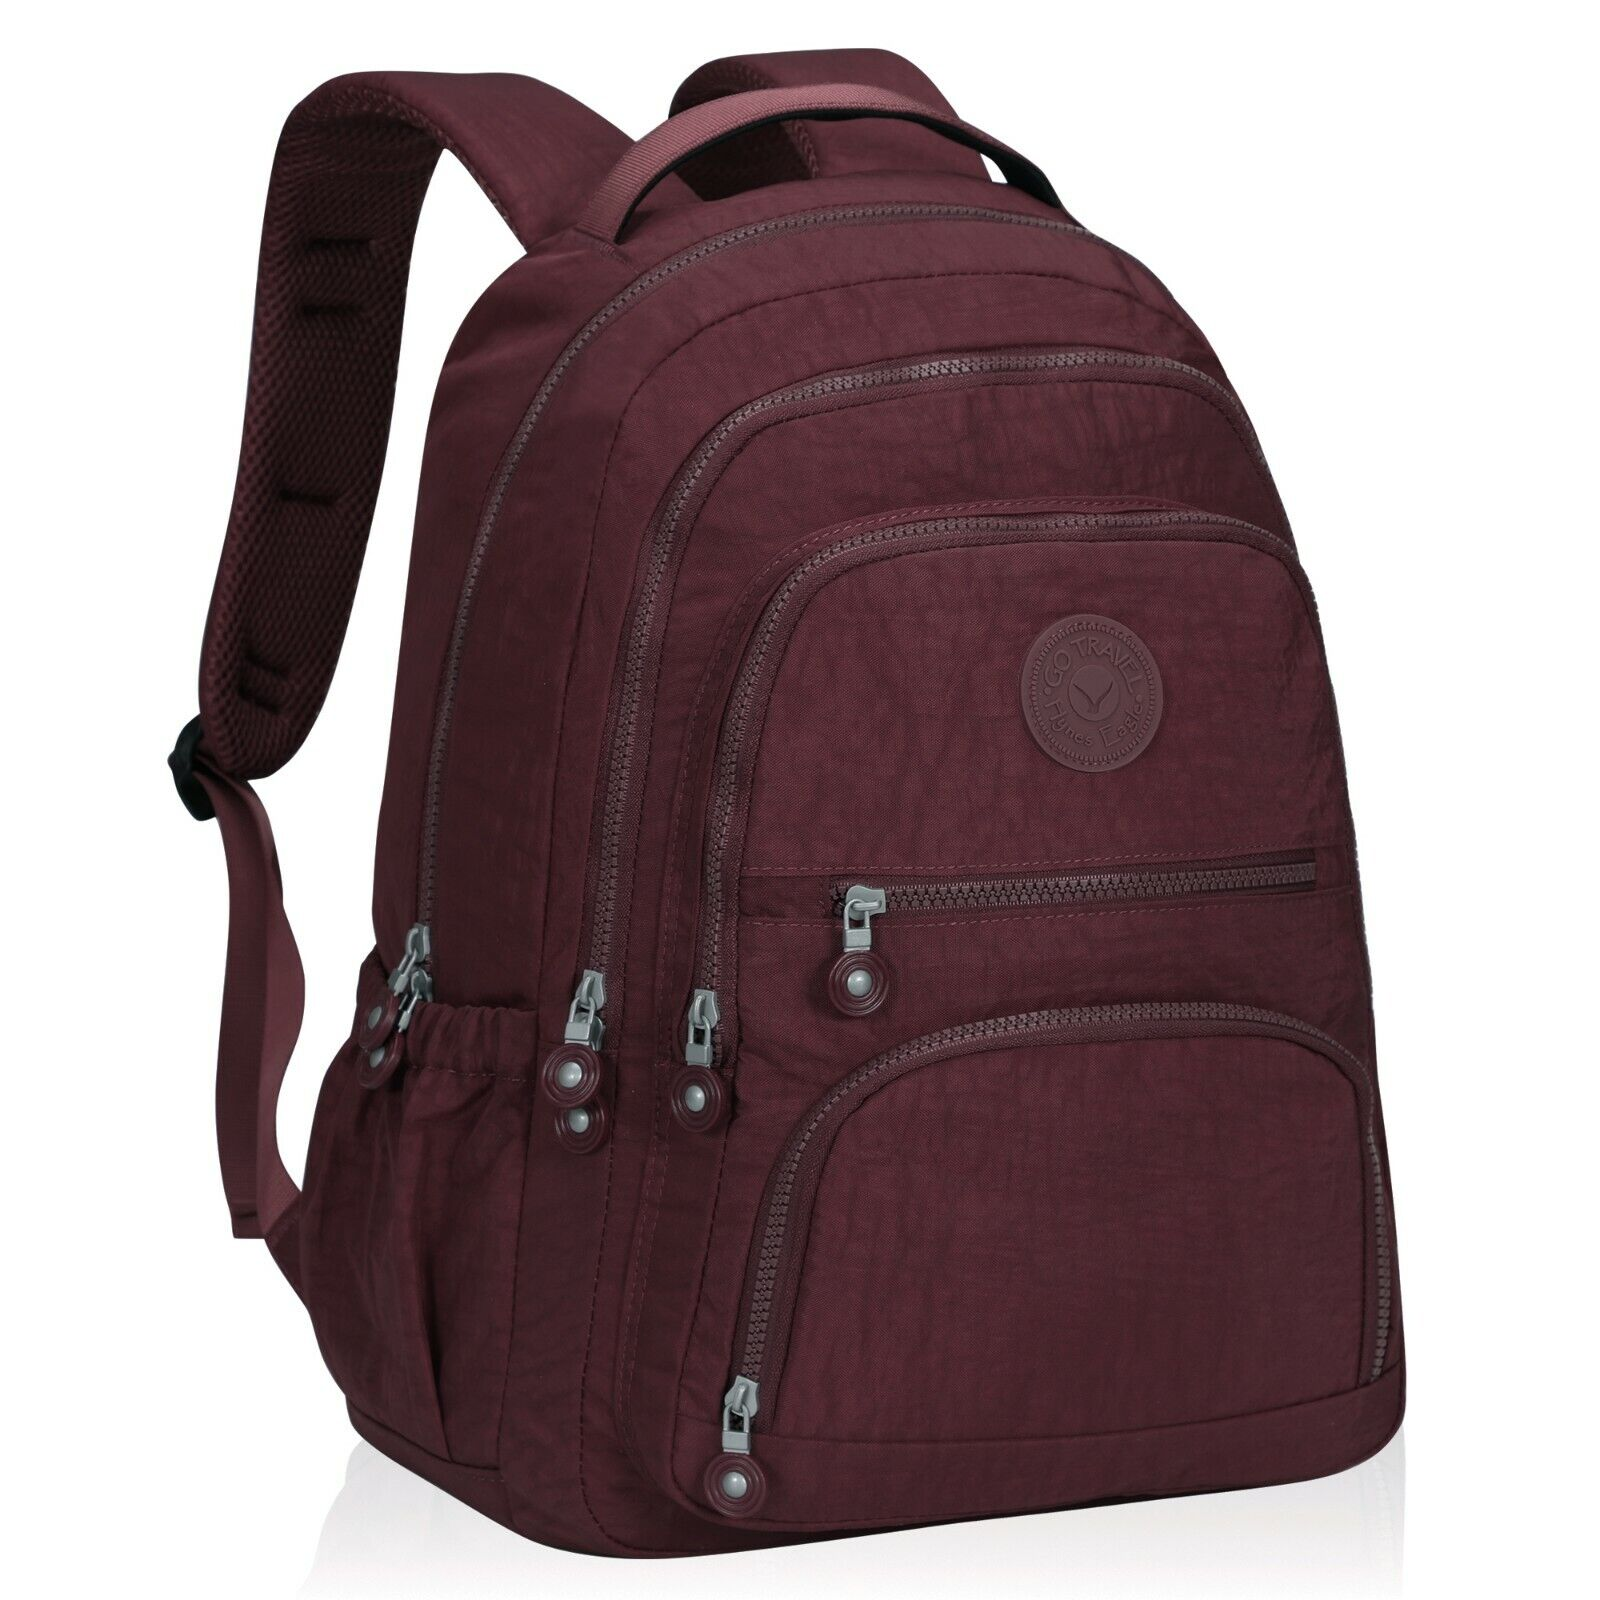 school backpack student casual daypack fits 15